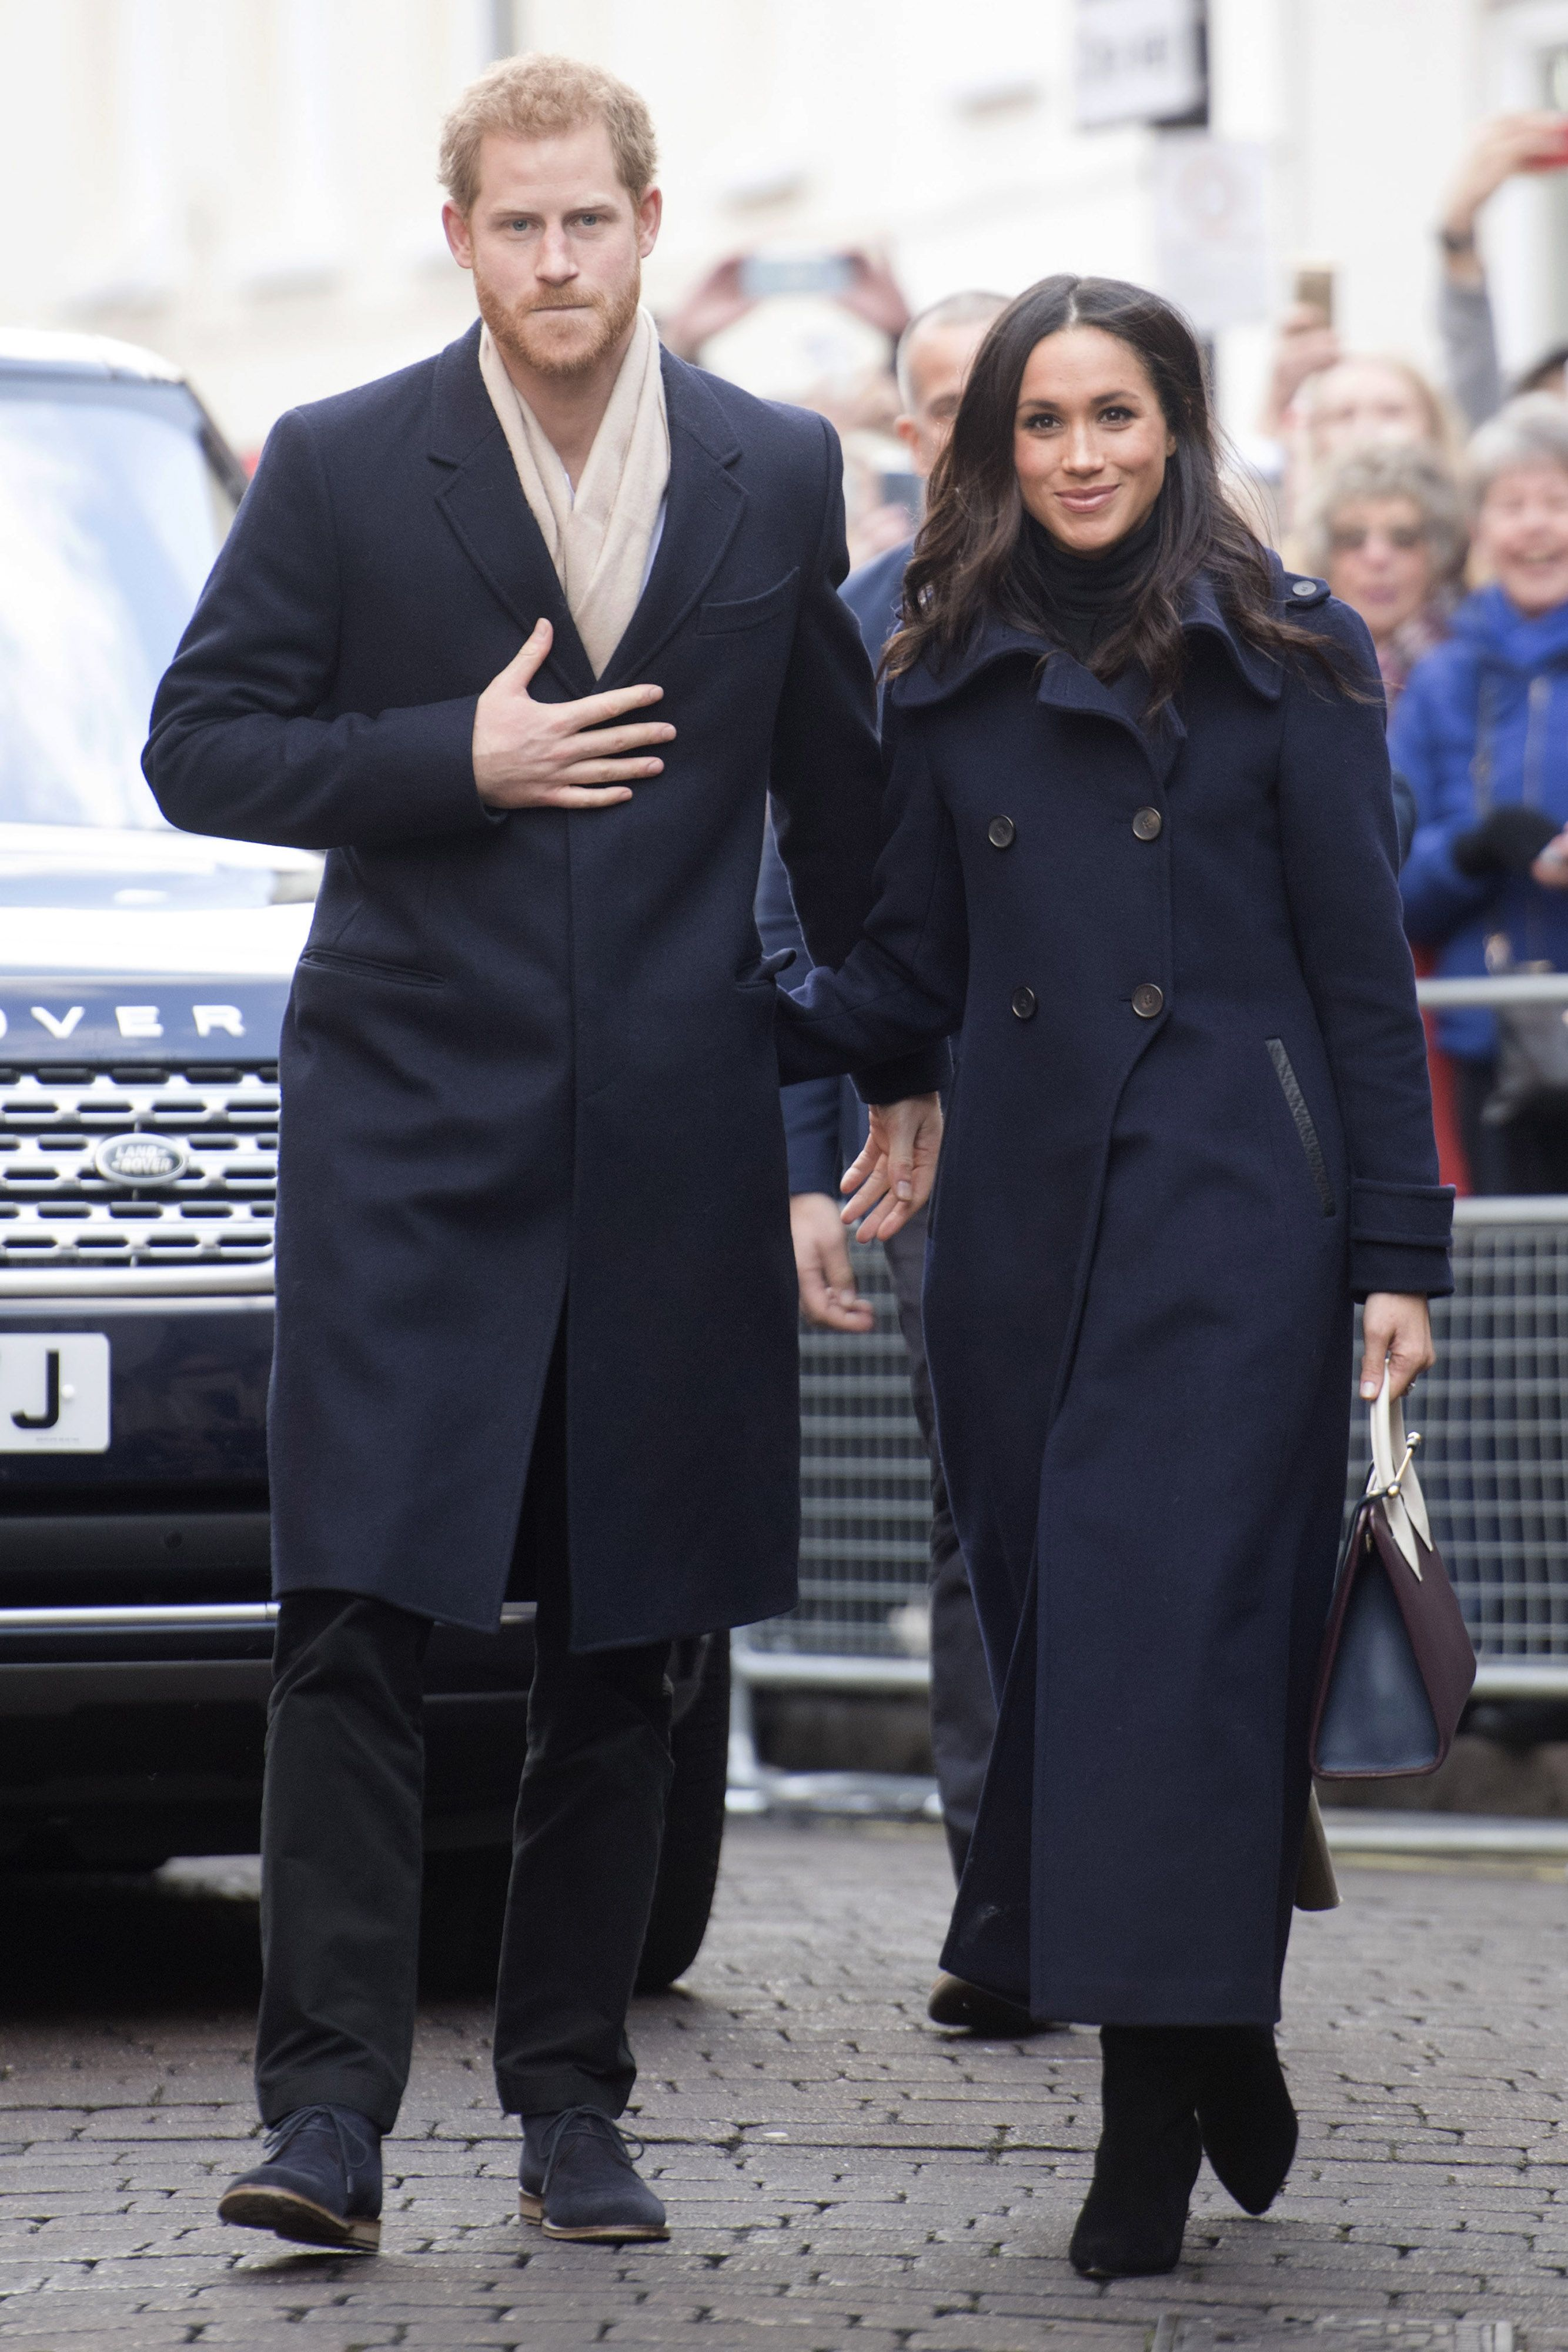 Petty People Are Calling Out Meghan Markle and Prince Harry for Making a Typo on Instagram